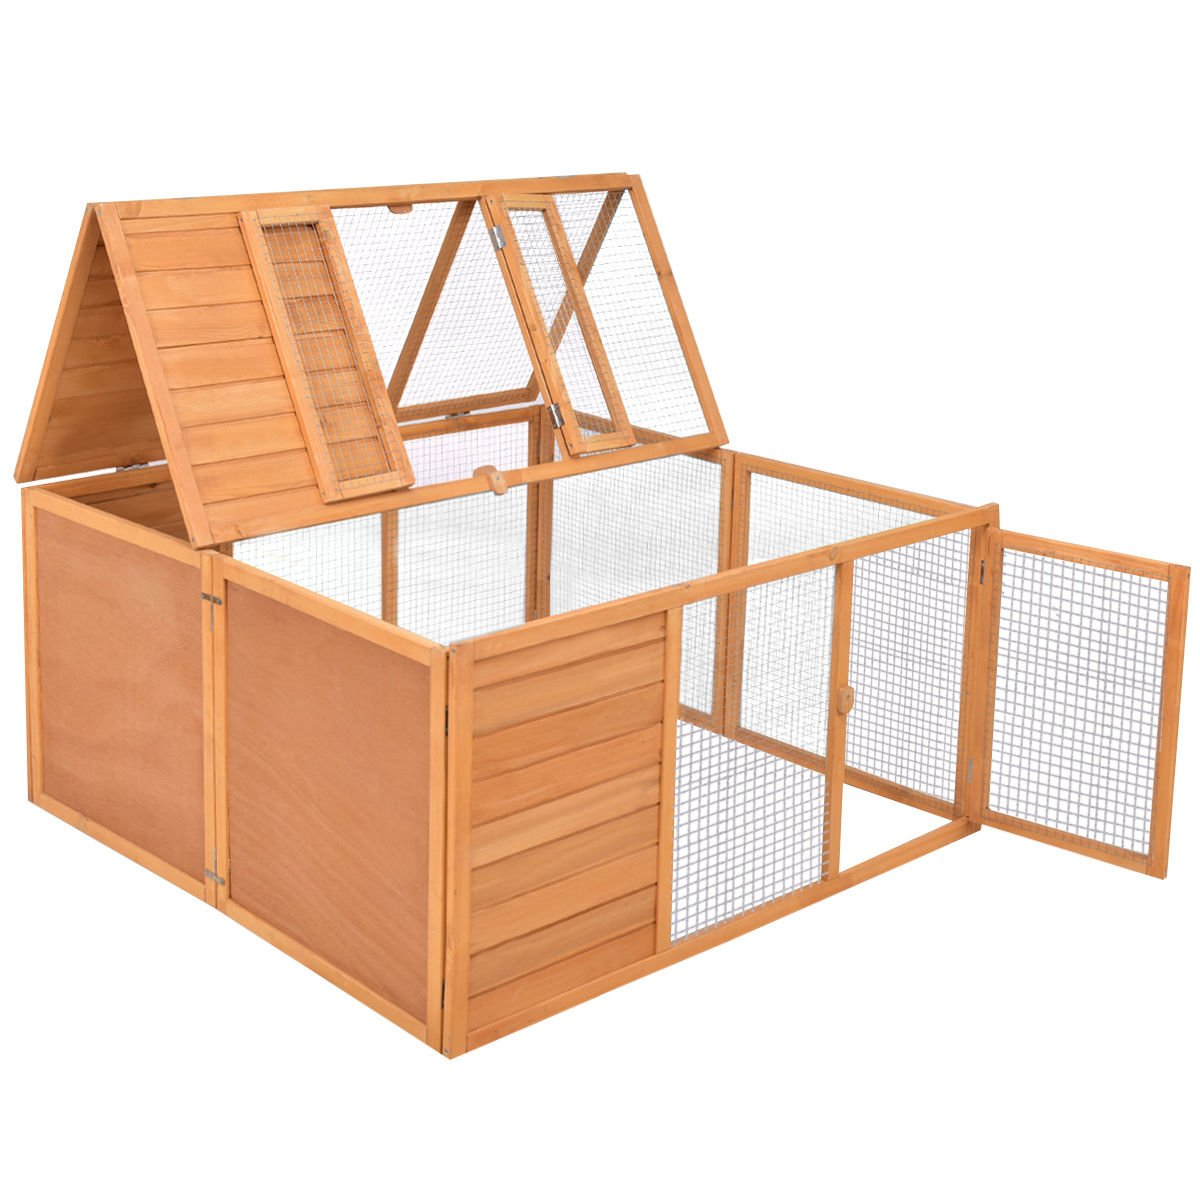 Tangkula Chicken Coop, Wooden Garden Backyard Bunny Chicken Rabbit Duck Small Animals Cage with 2 Doors,Hen House (47'') by Tangkula (Image #1)